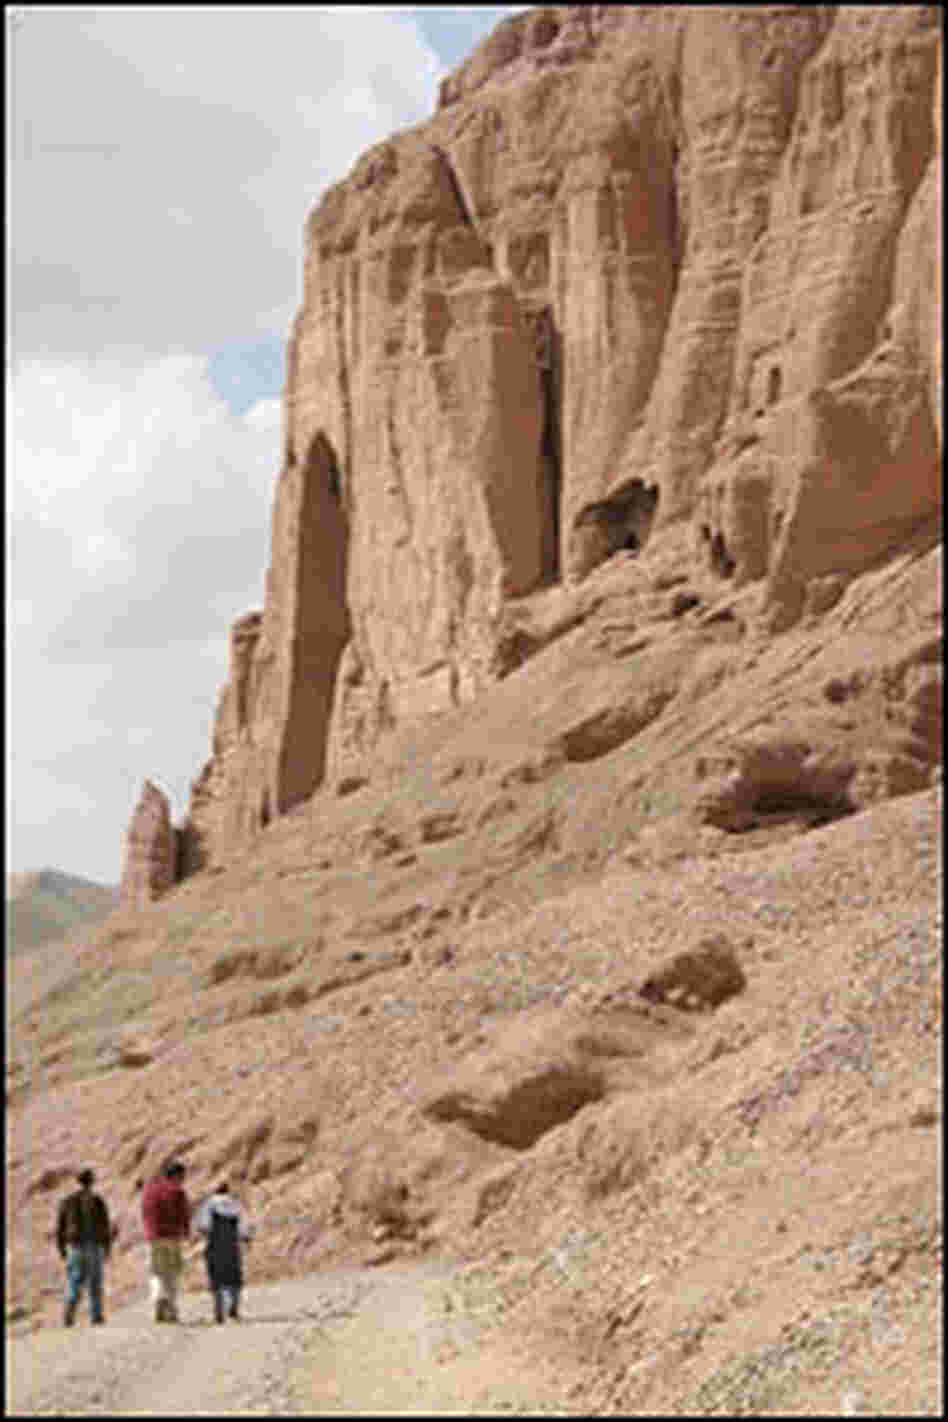 The Bamiyan cliffs